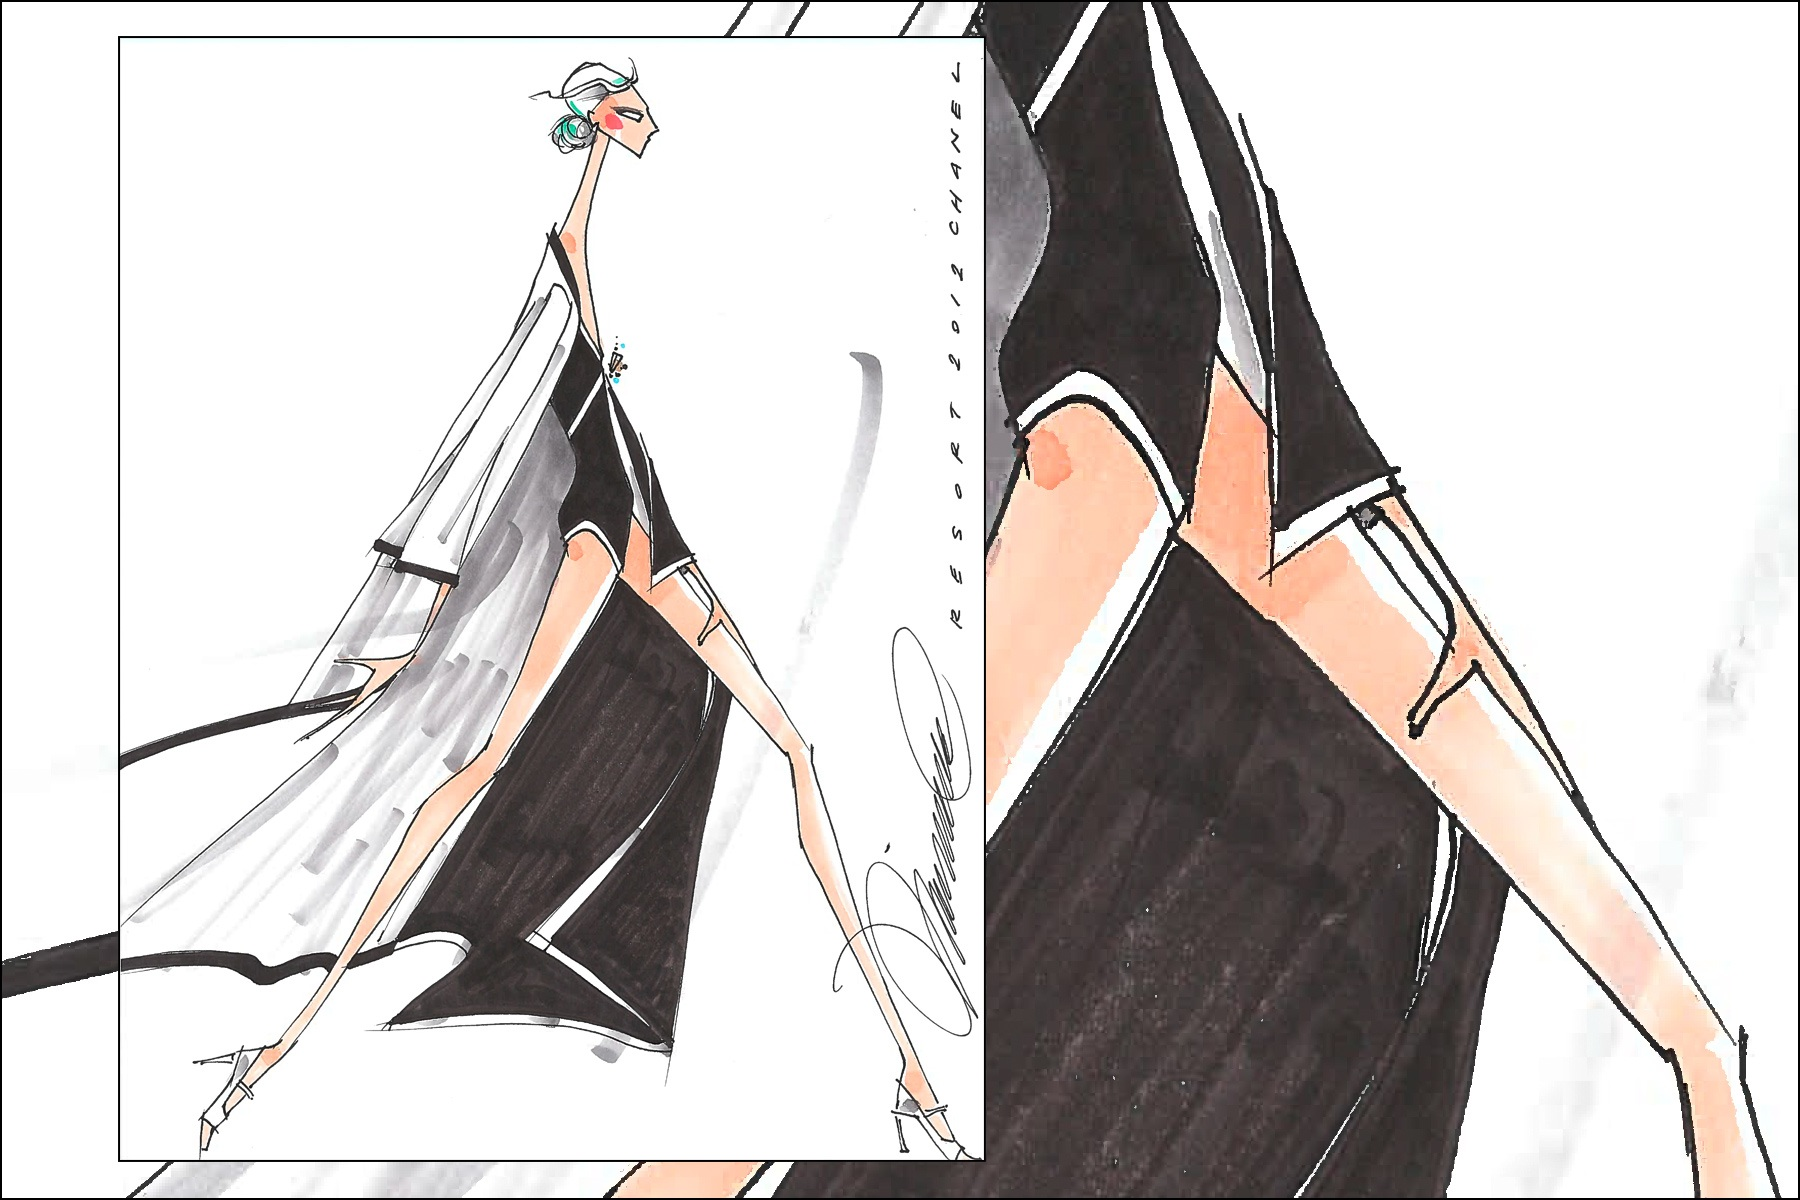 Chanel Resort 2012 fashion illustration by Michael Ward. Ponyboy magazine New York.